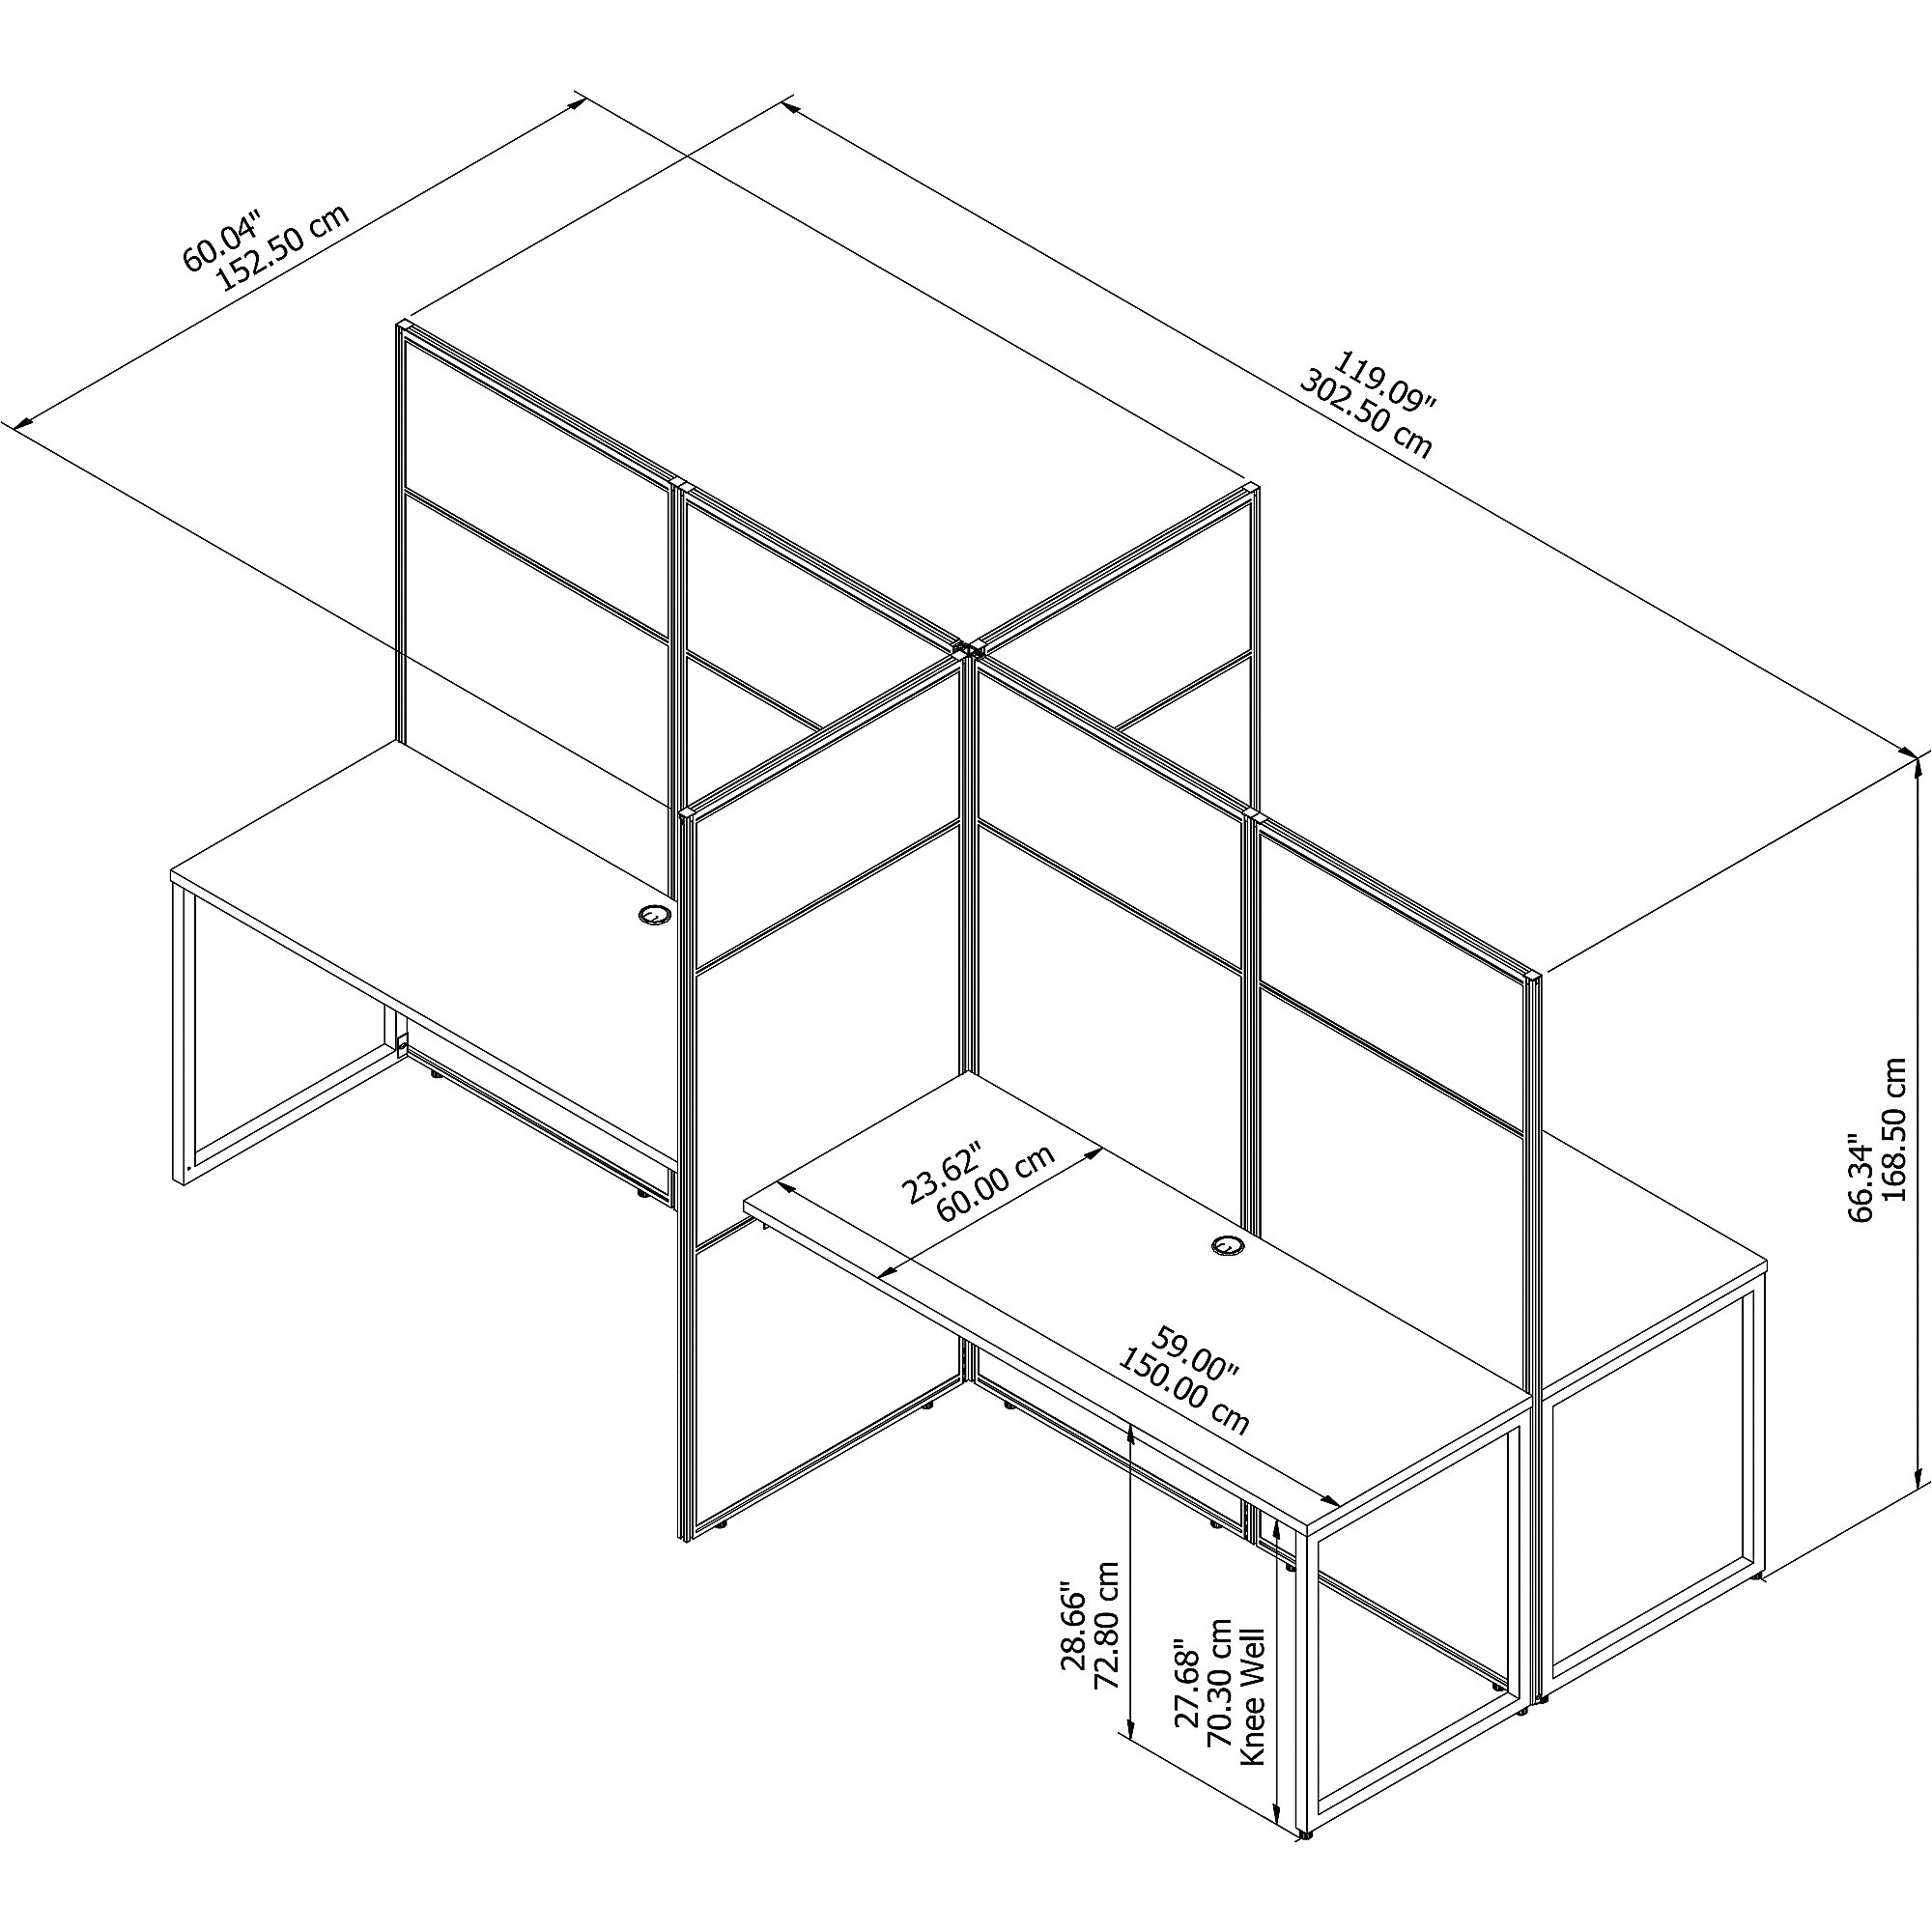 eodh660 line drawing and dimensions